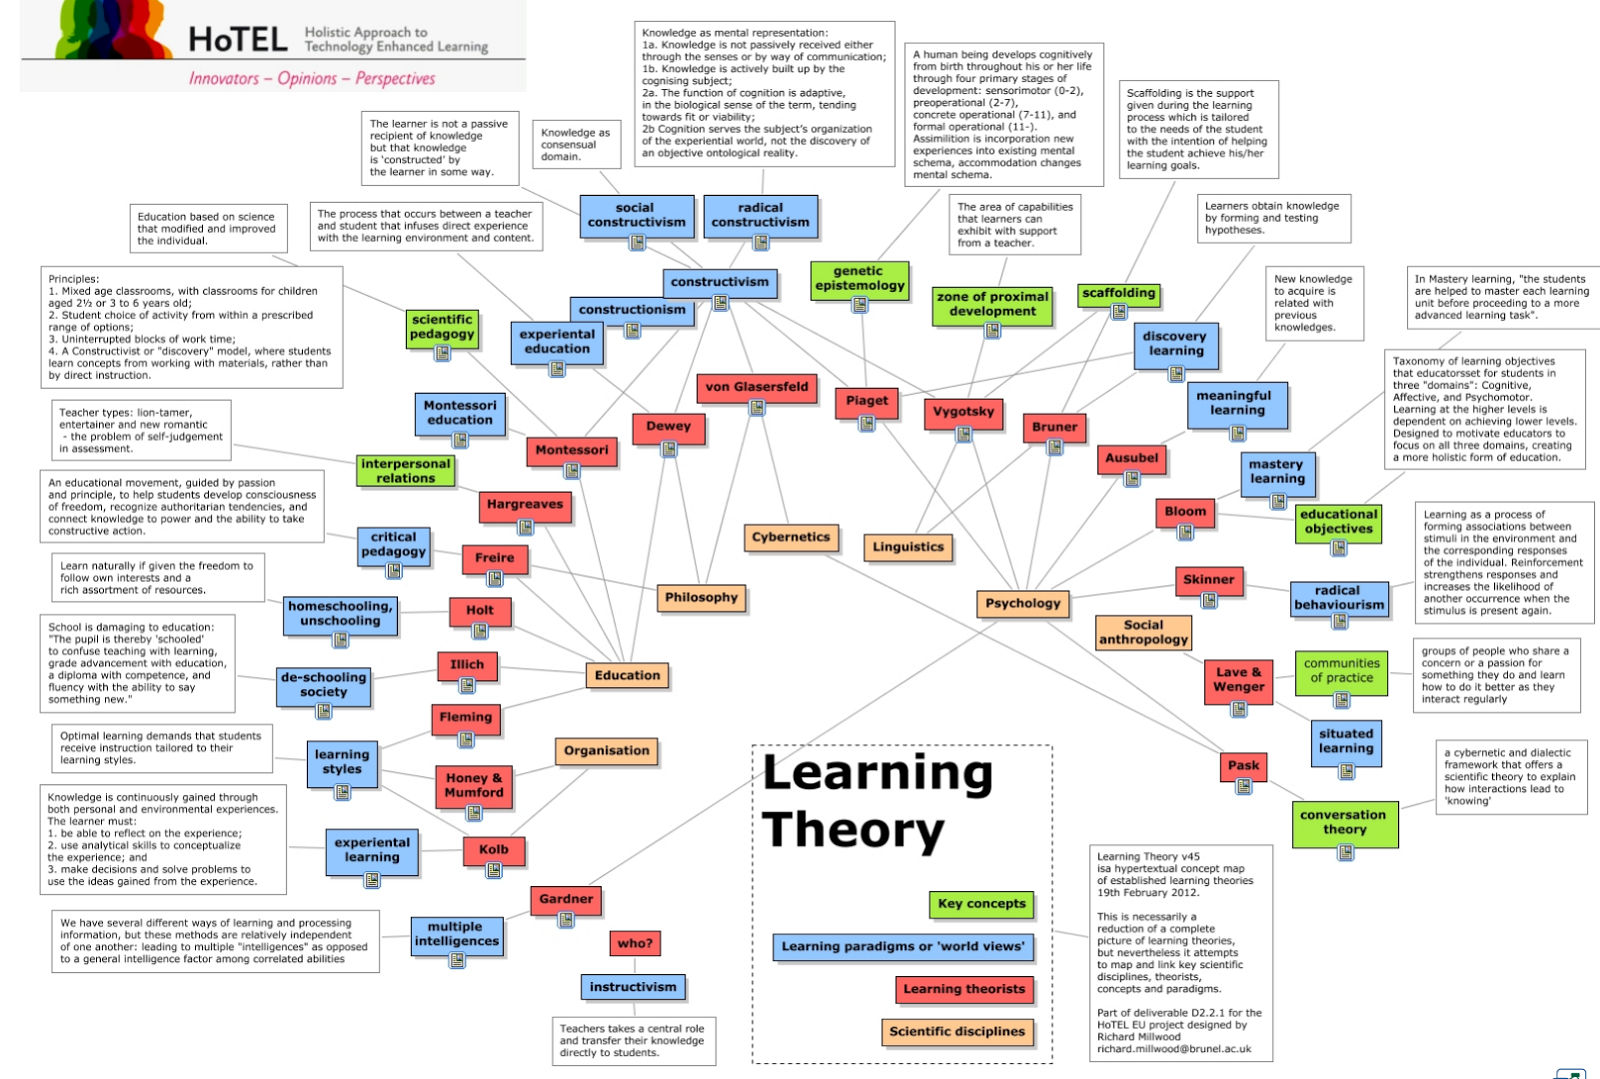 theories of learning 2014 Educational articles are an excellent resource for parents who are interested in learning about the best parenting practices from experts in the field.